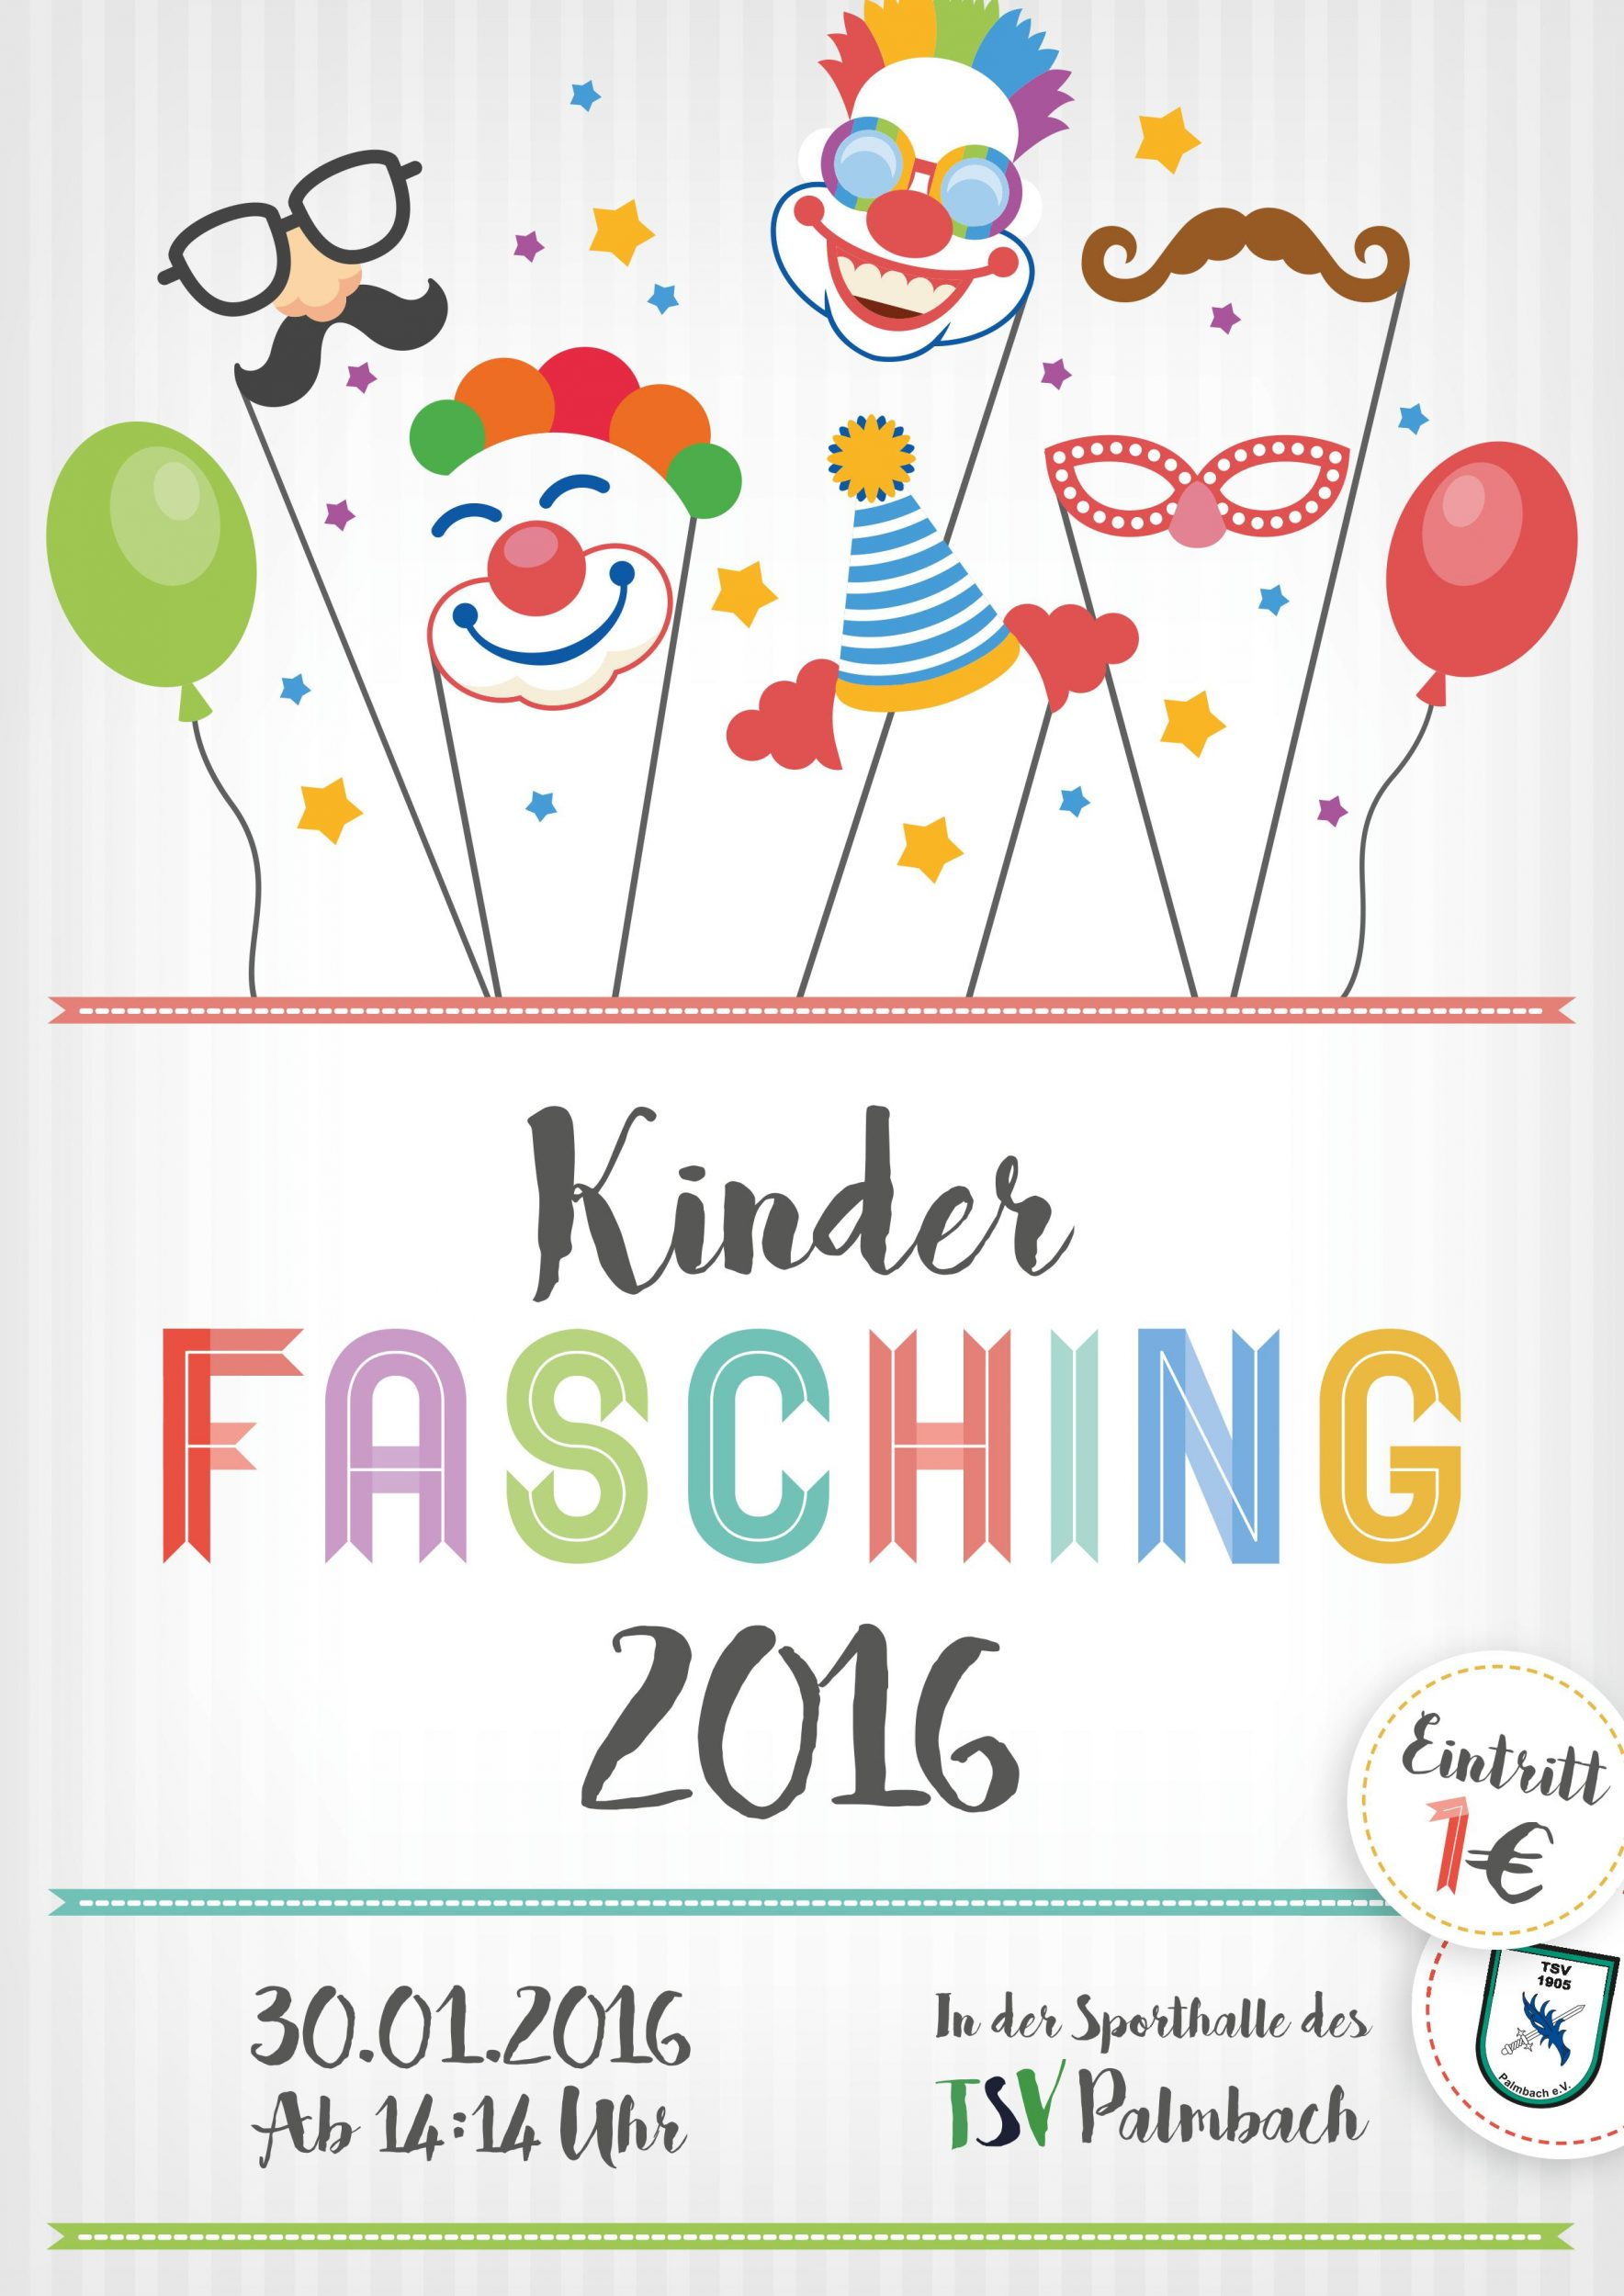 Tsv Kinder Fasching Turn Und Sportverein Palmbach 1905 E V